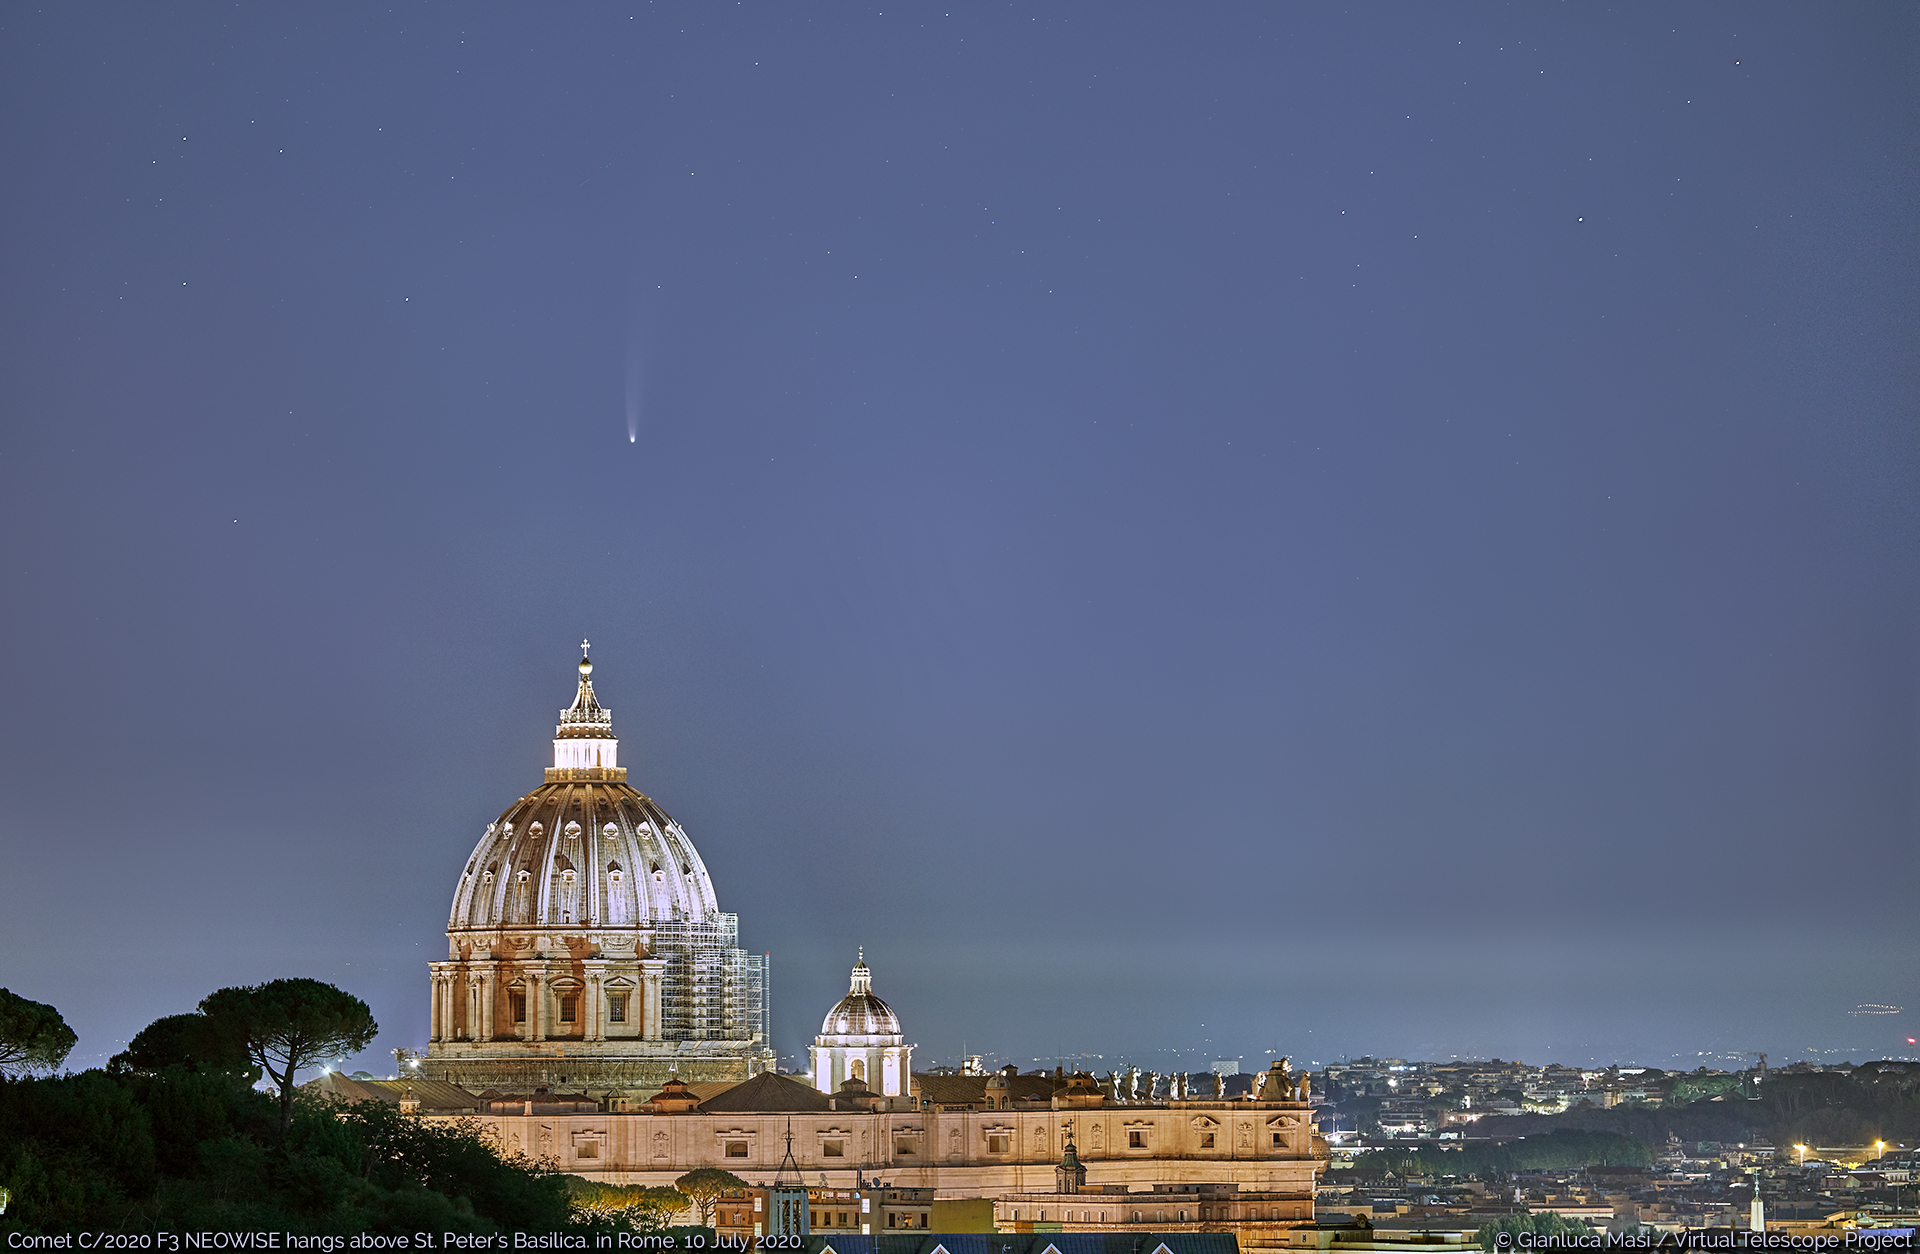 Comet C/2020 F3 NEOWISE hangs above the St. Peter's Basilica in Rome - 10 July 2020.